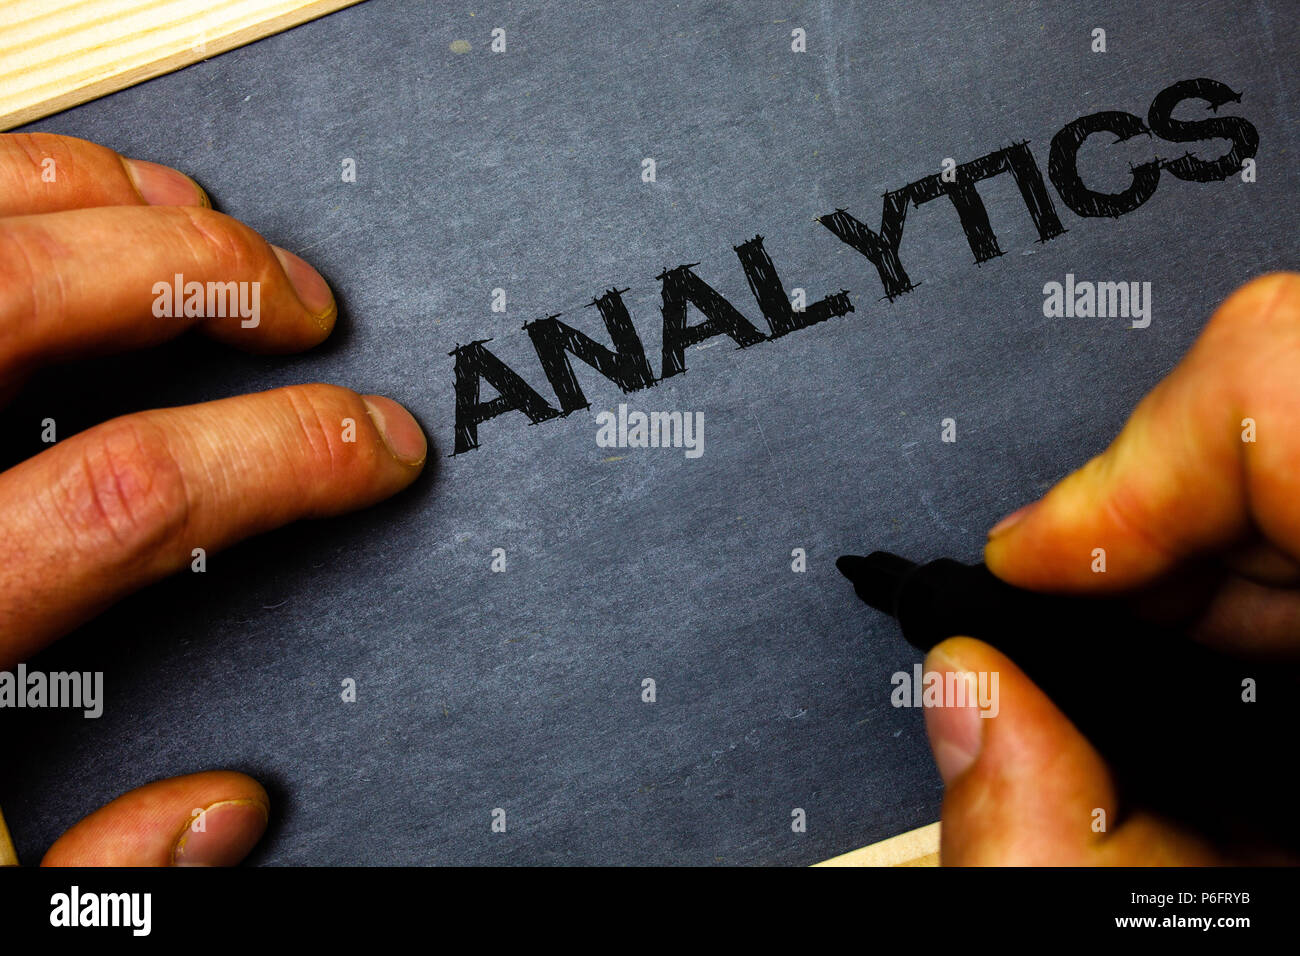 Word writing text Analytics. Business concept for Data Analysis Financial Information Statistics Report Dashboard Man hold holding black marker marker - Stock Image